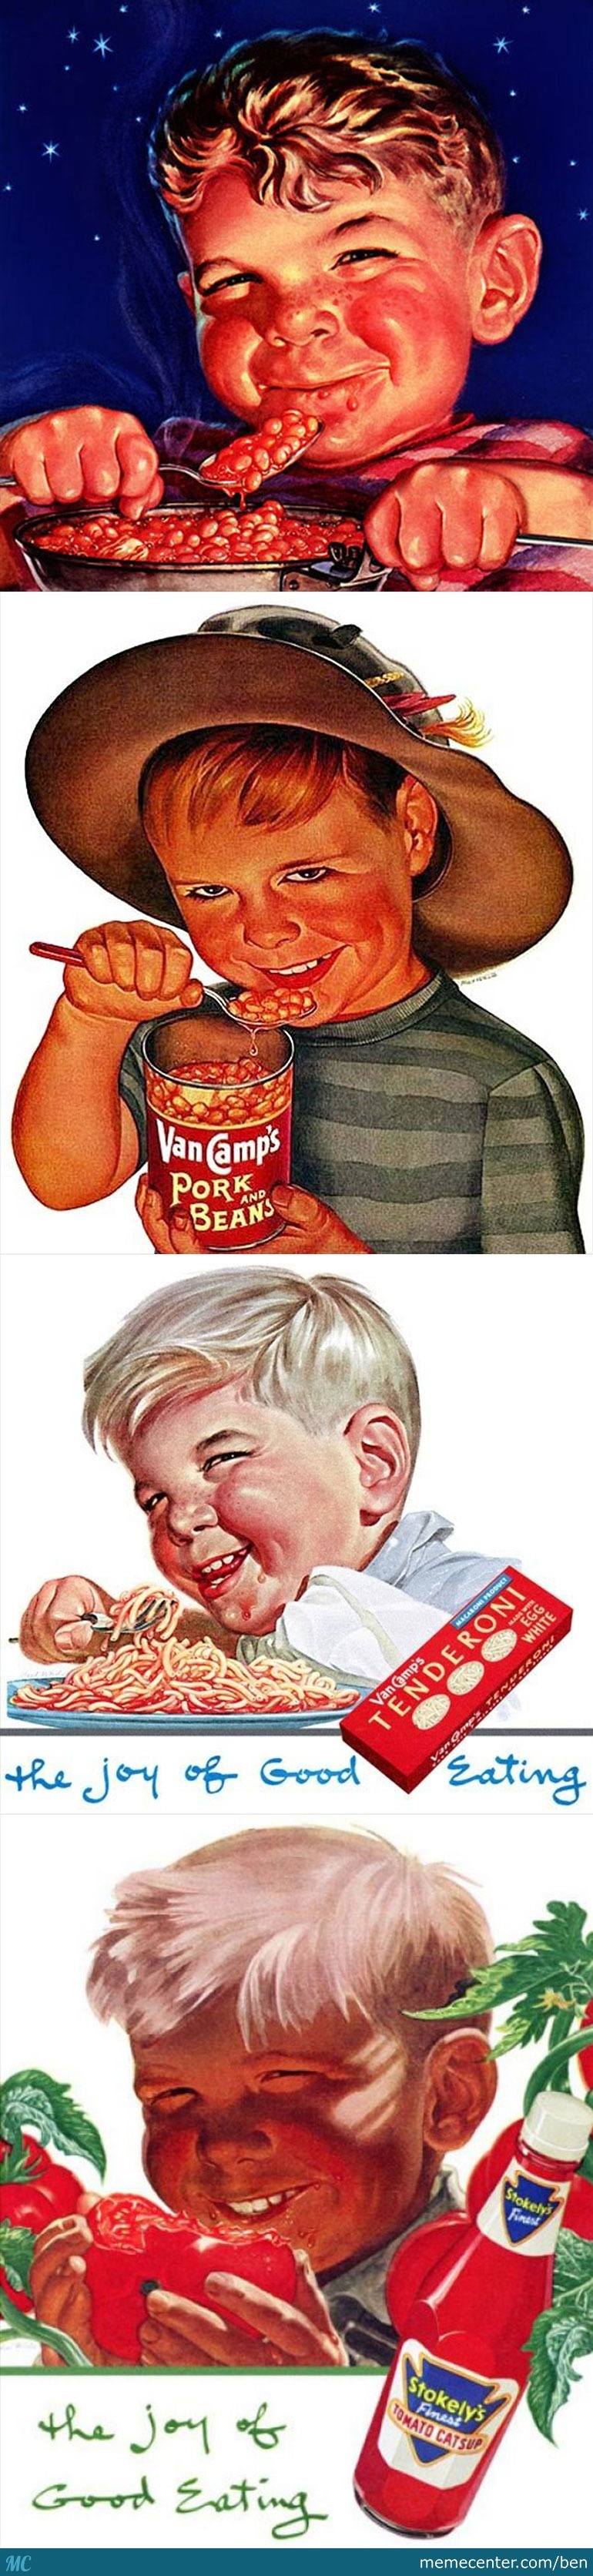 Creepy Vintage Ads